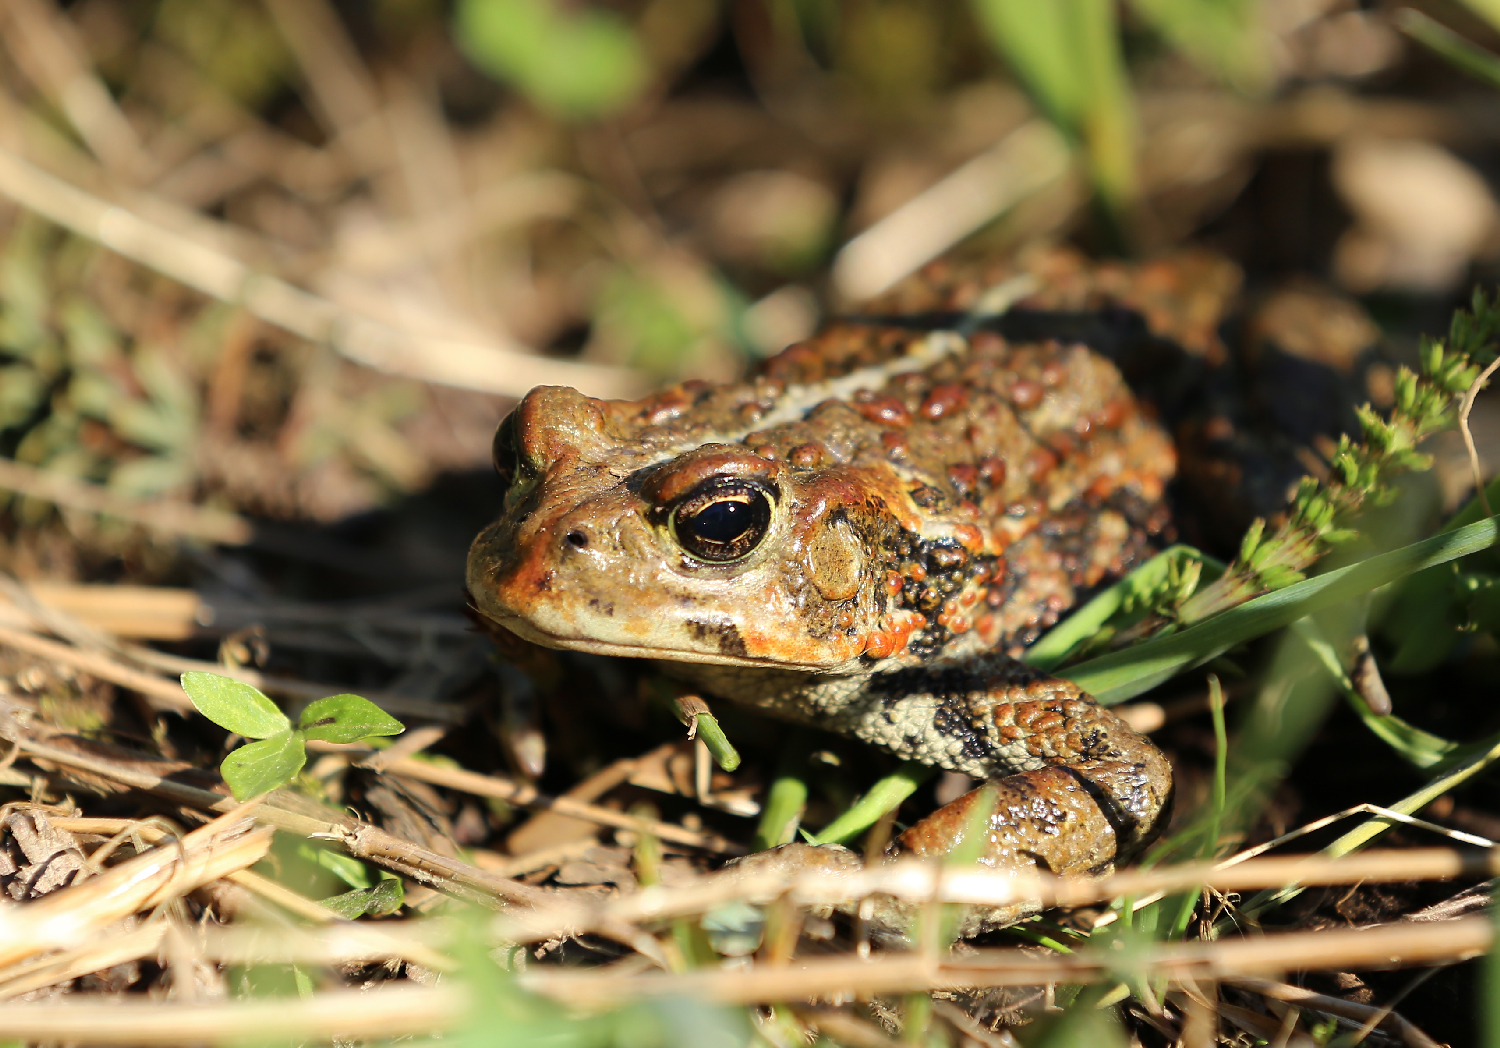 A nice, big adult Western toad. They come in brown and green around here. Brown ones are more common.